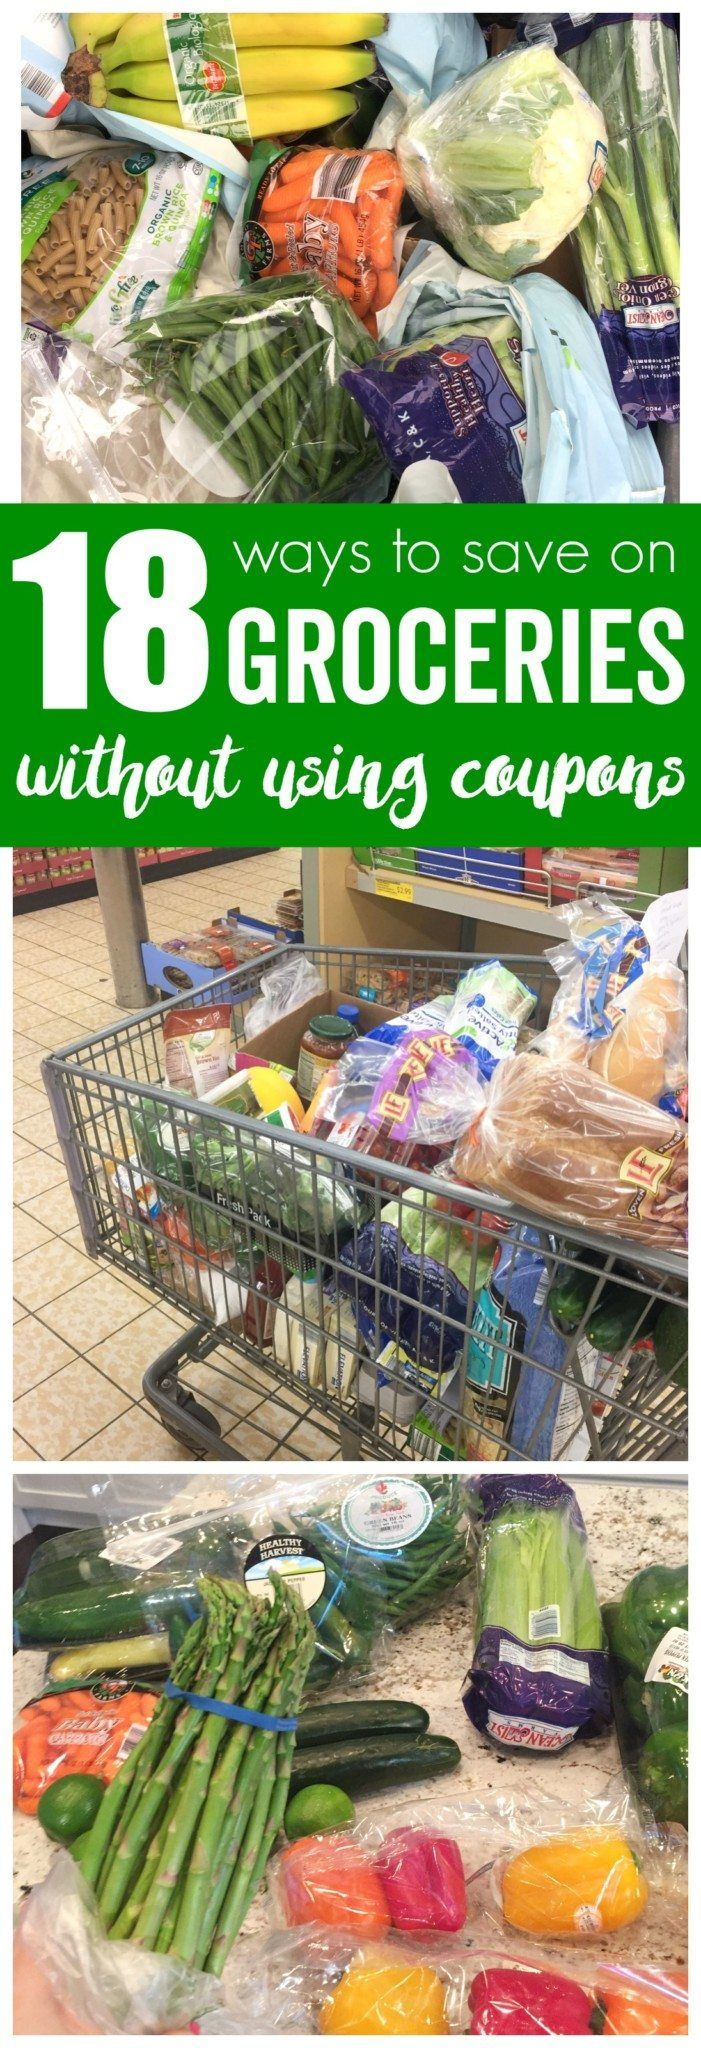 Learn How to Save Money on groceries without Using Coupons on your Groceries. Save up to 50% without using coupons by following these Grocery Savings Tips!